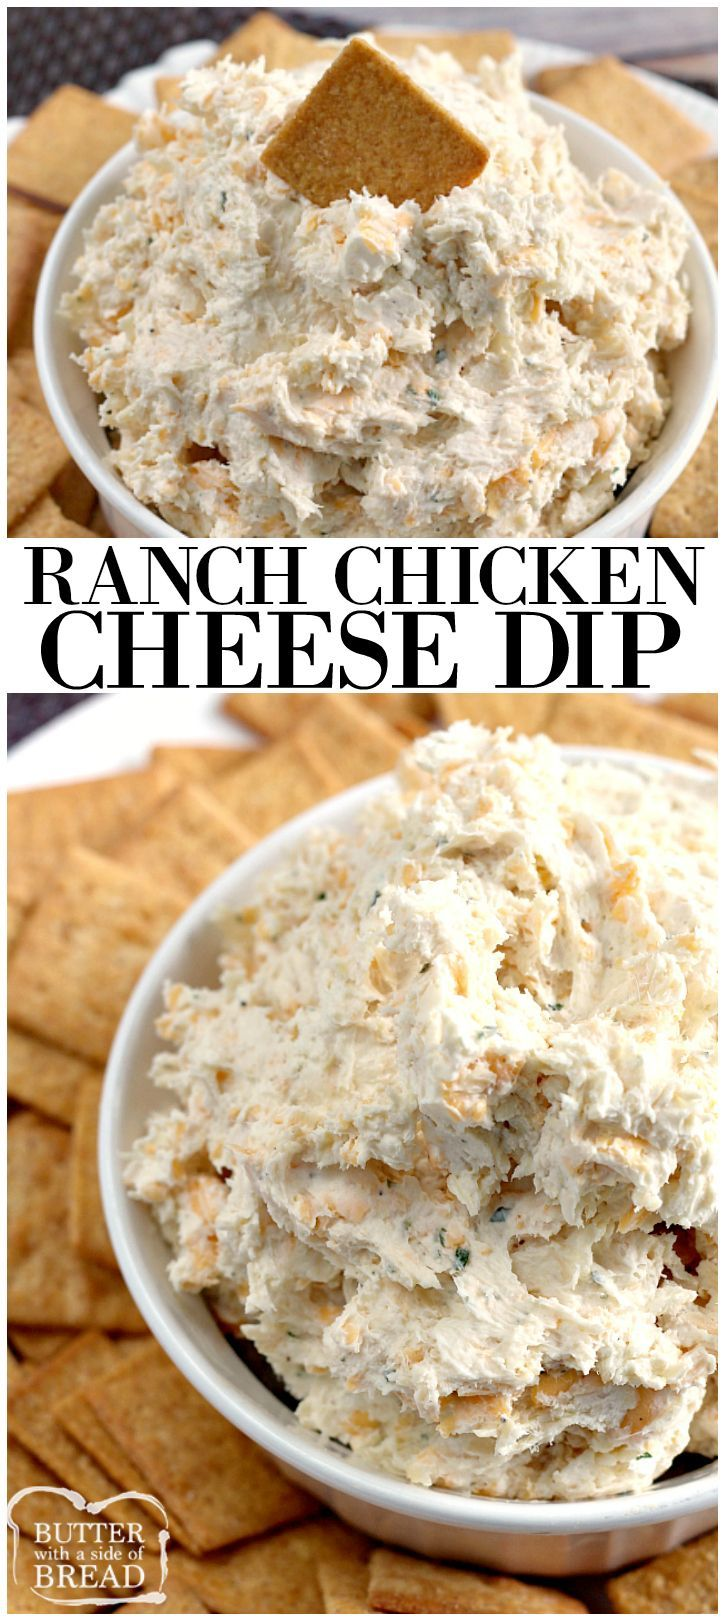 Ranch Chicken Cheese dip will knock your socks off! Only four basic ingredients needed and only takes a few minutes to whip up for your next get together! Easy ranch dip recipe with chicken from Butte